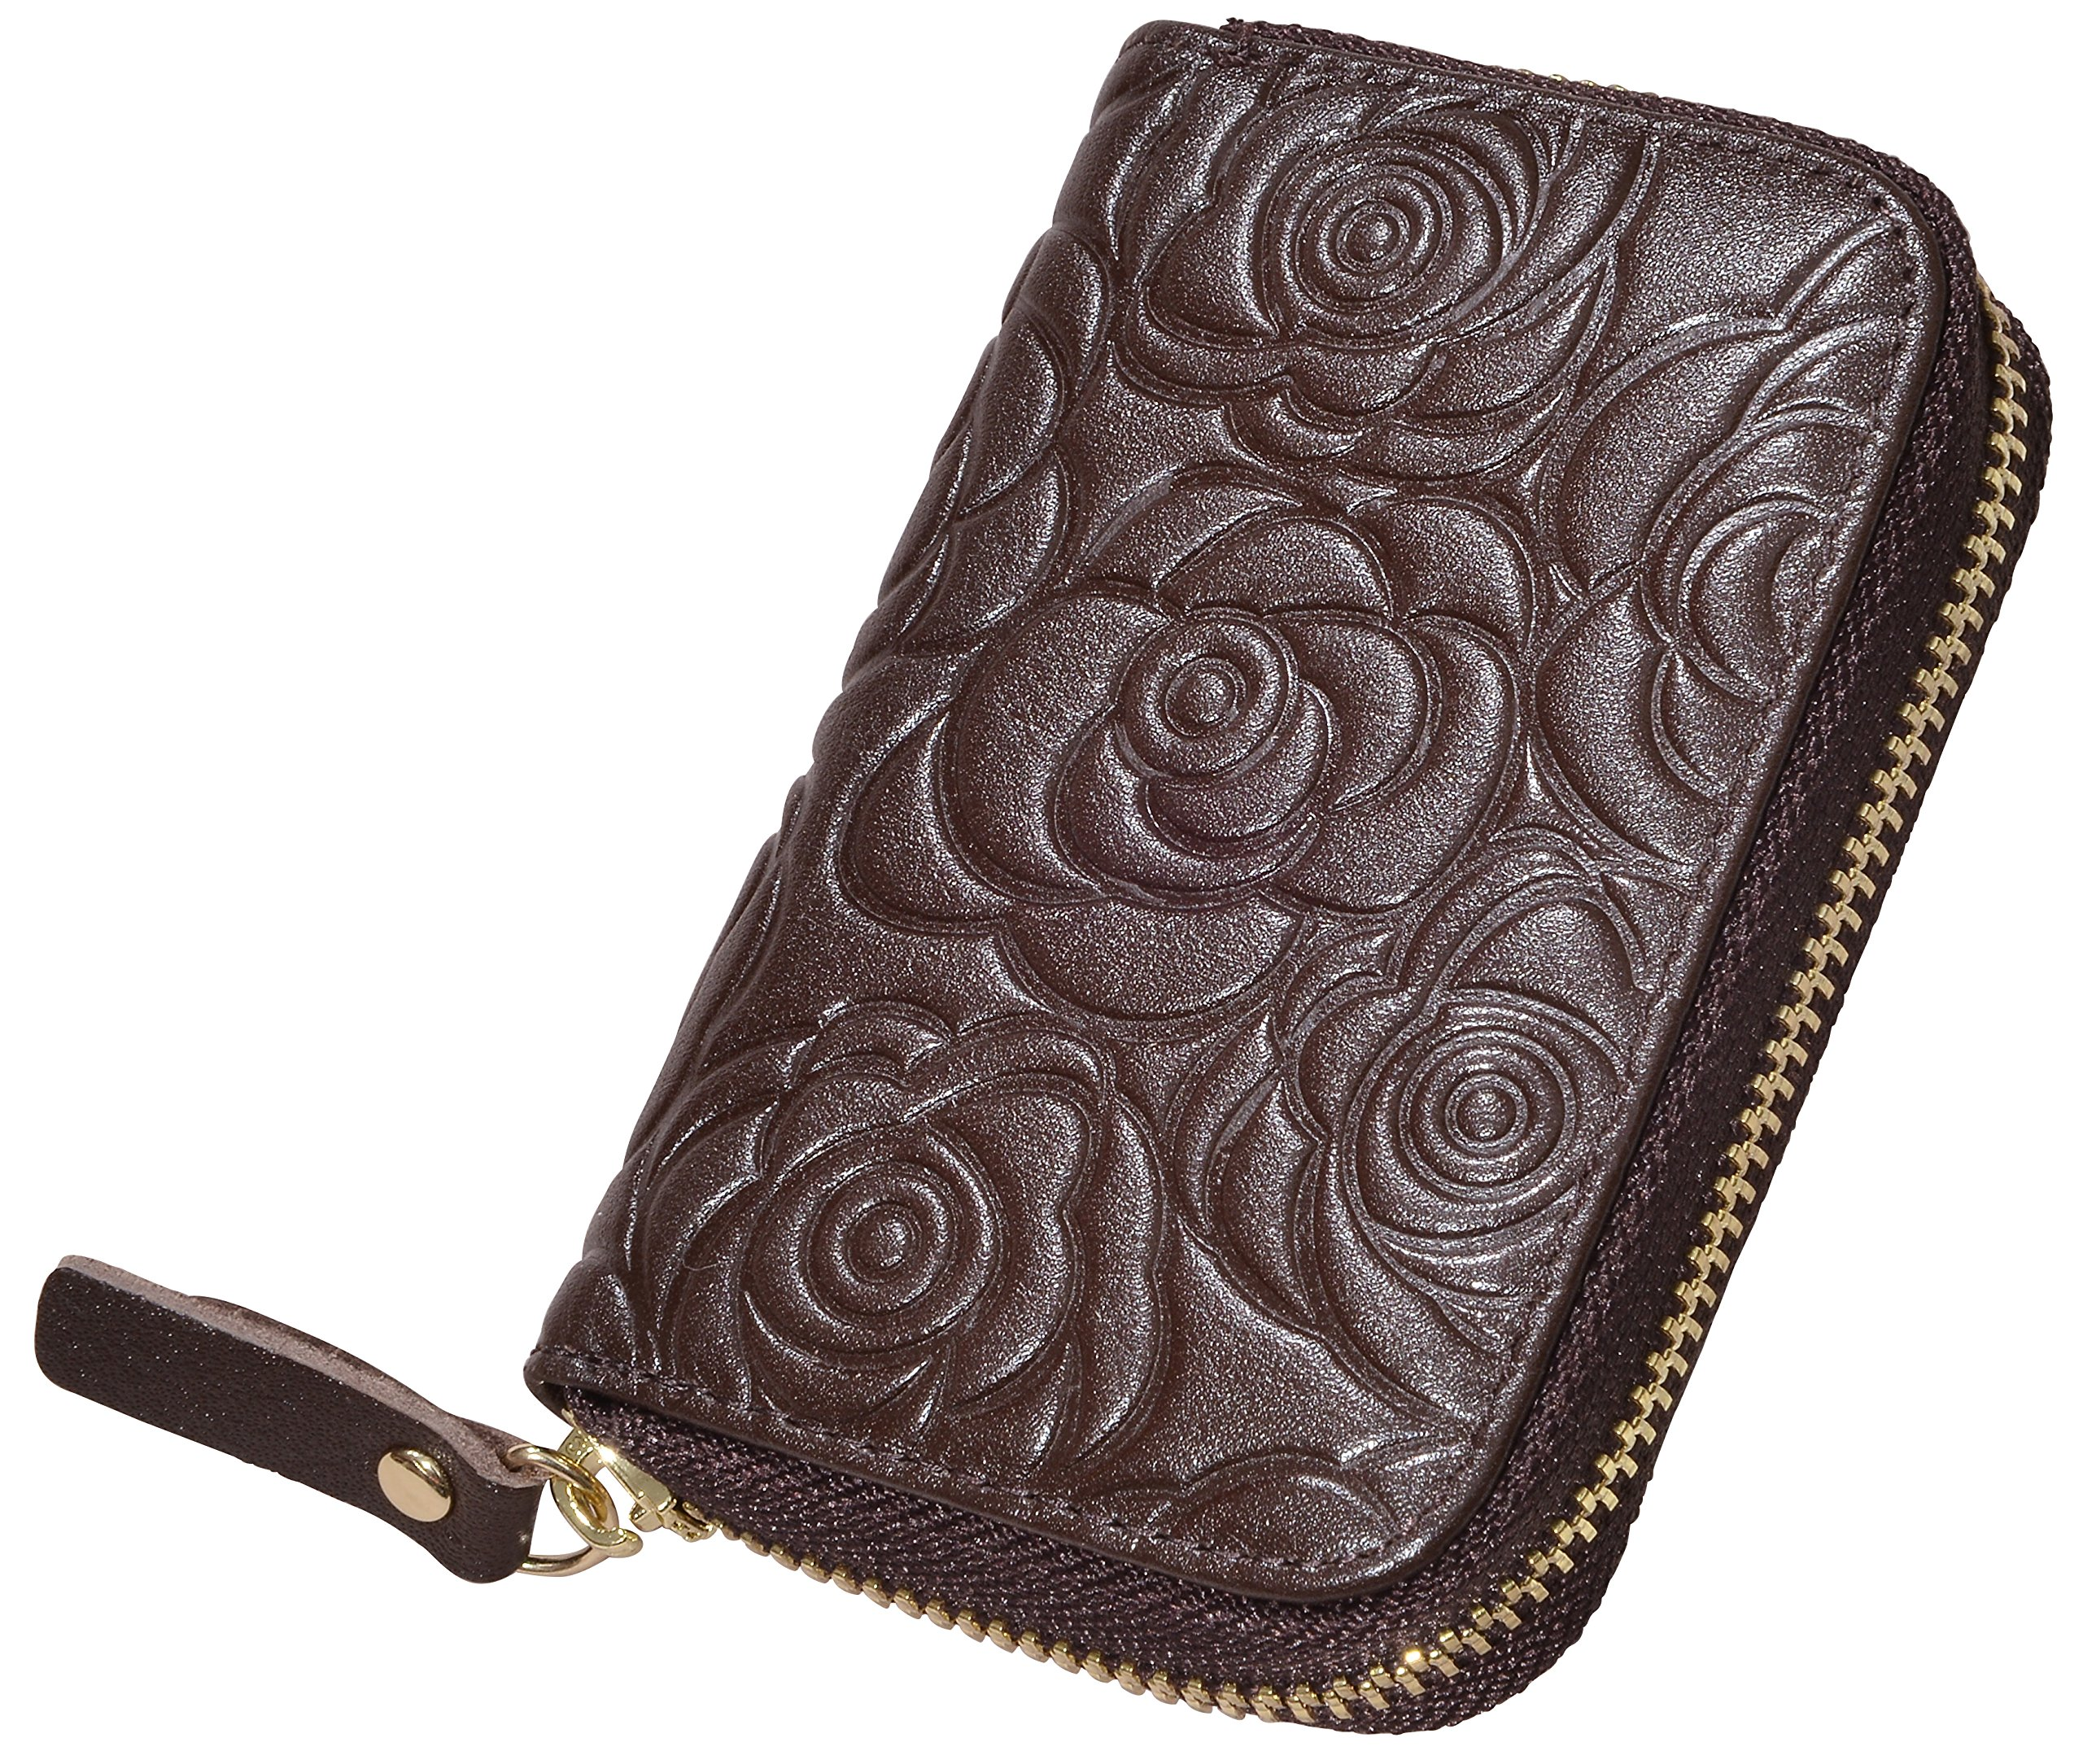 Beurlike Women's Floral Leather Credit Card Holder RFID Security Small Wallet (Coffee) by Beurlike (Image #4)